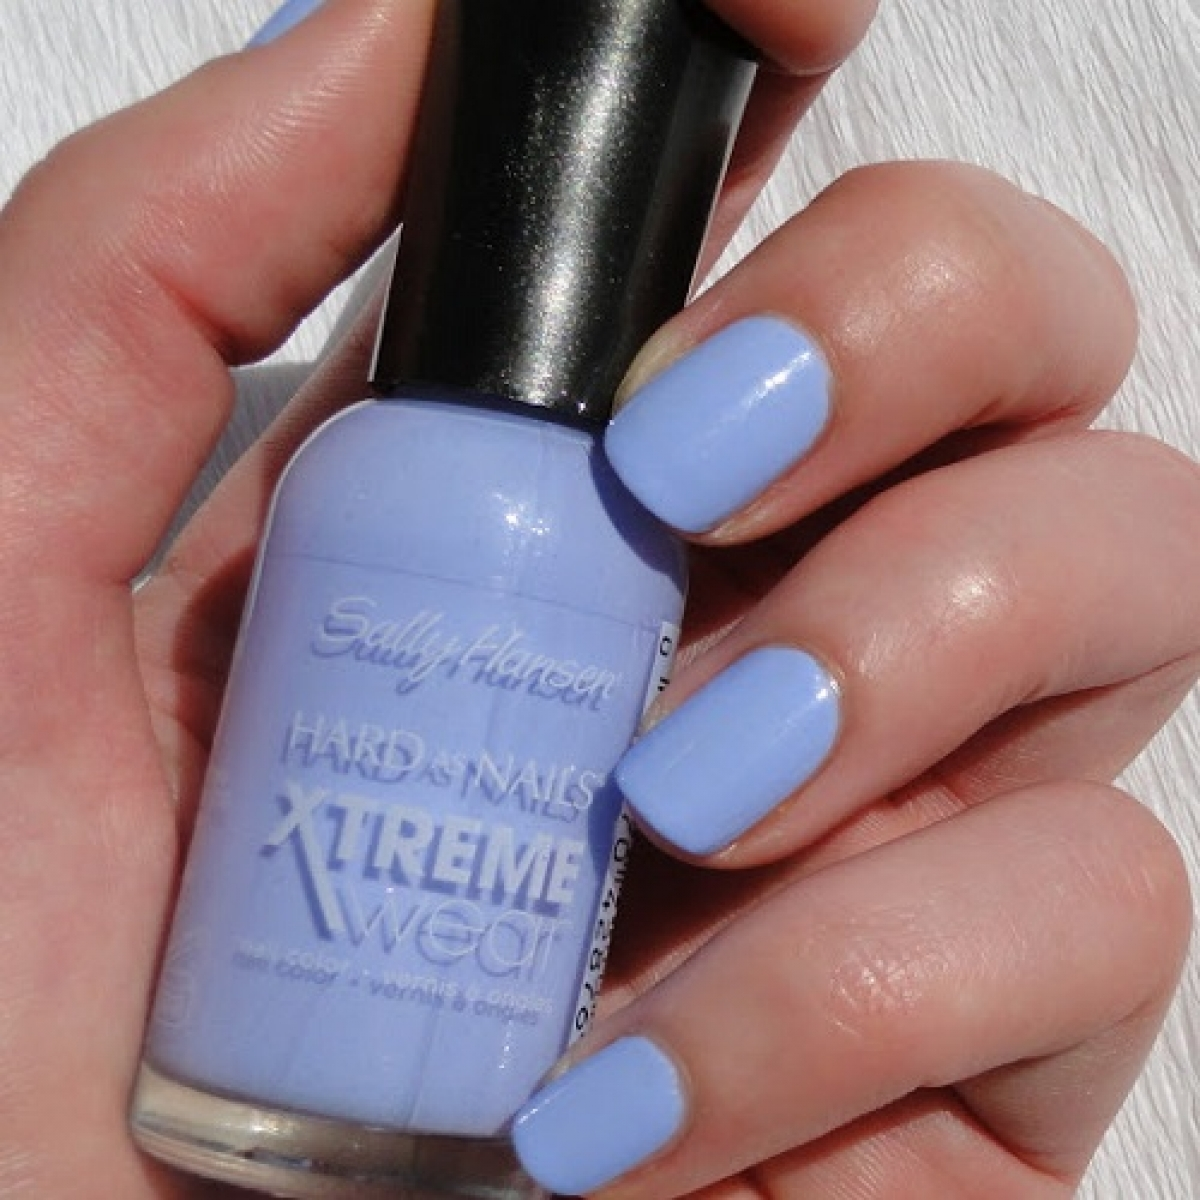 Sally Hansen Xtreme Wear Nail Color #240